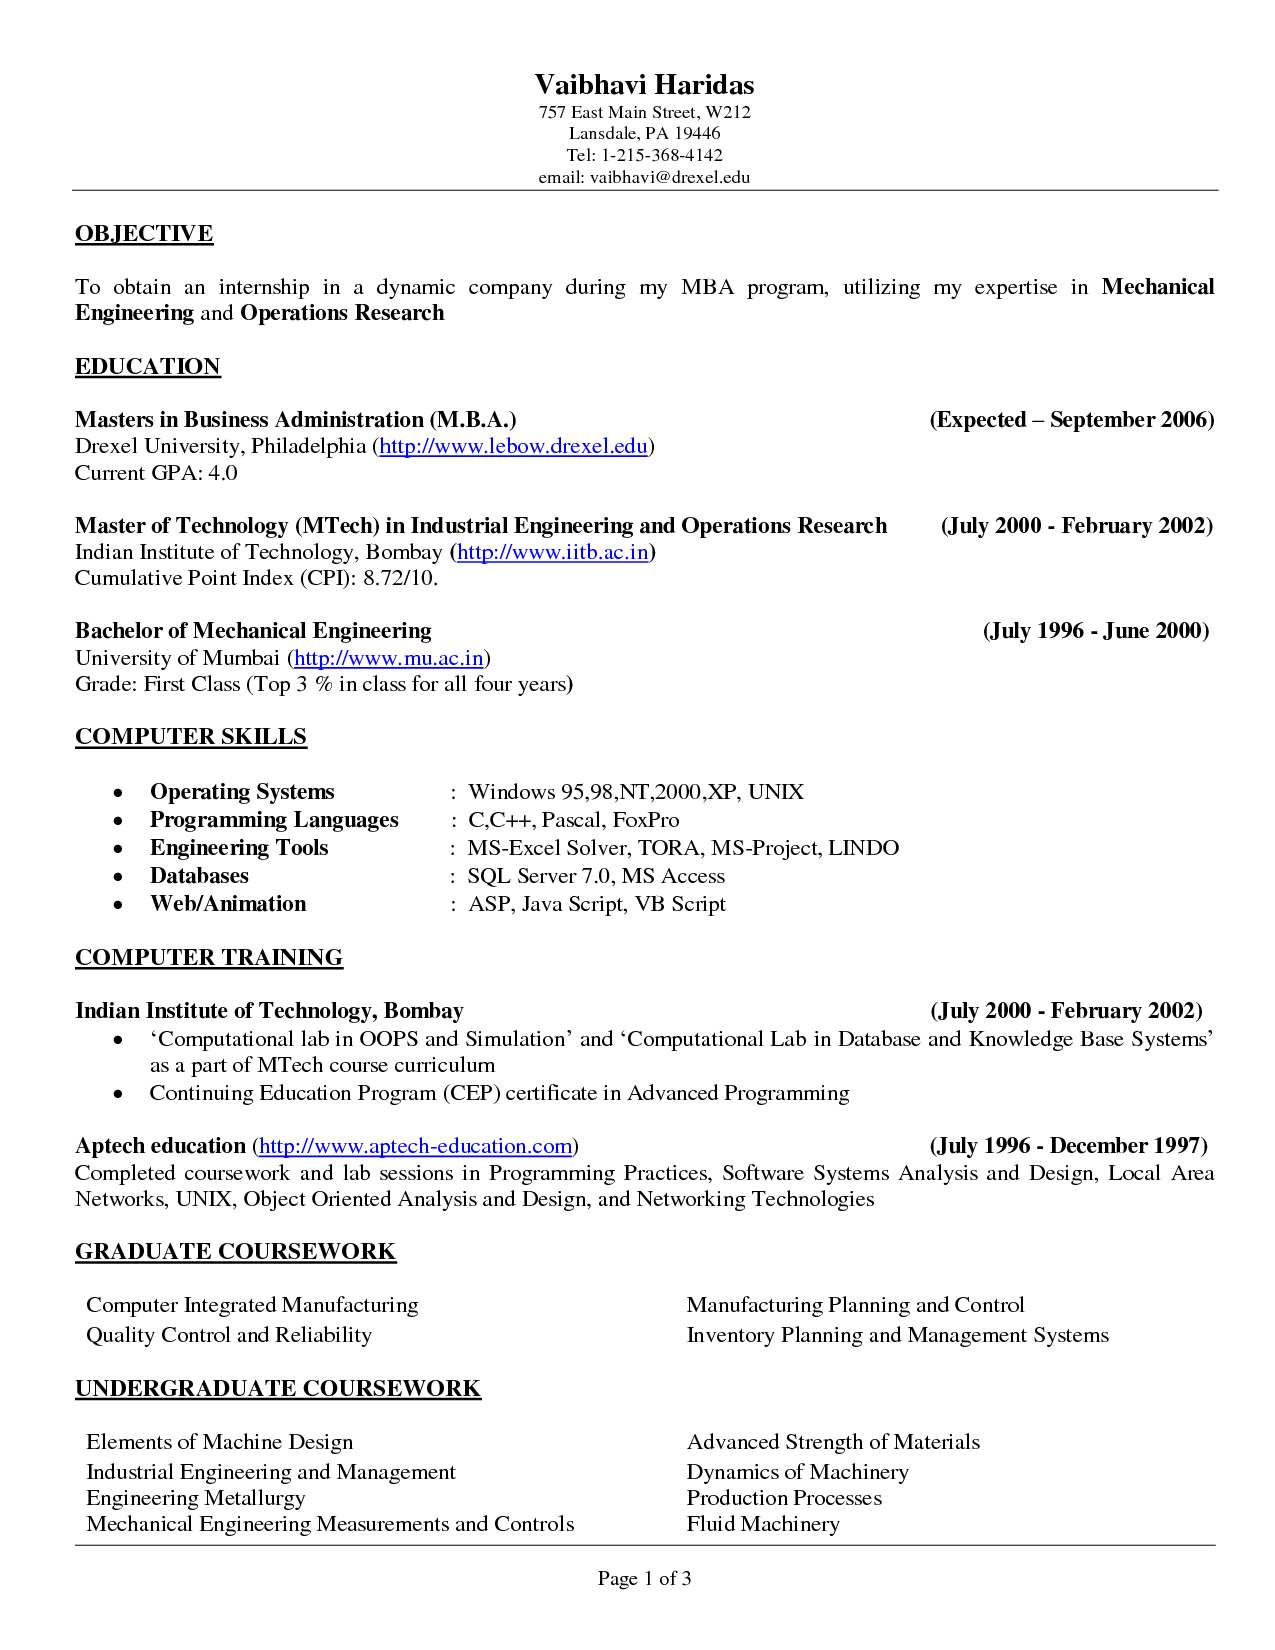 resume objective example best templateresume objective examples application letter sample